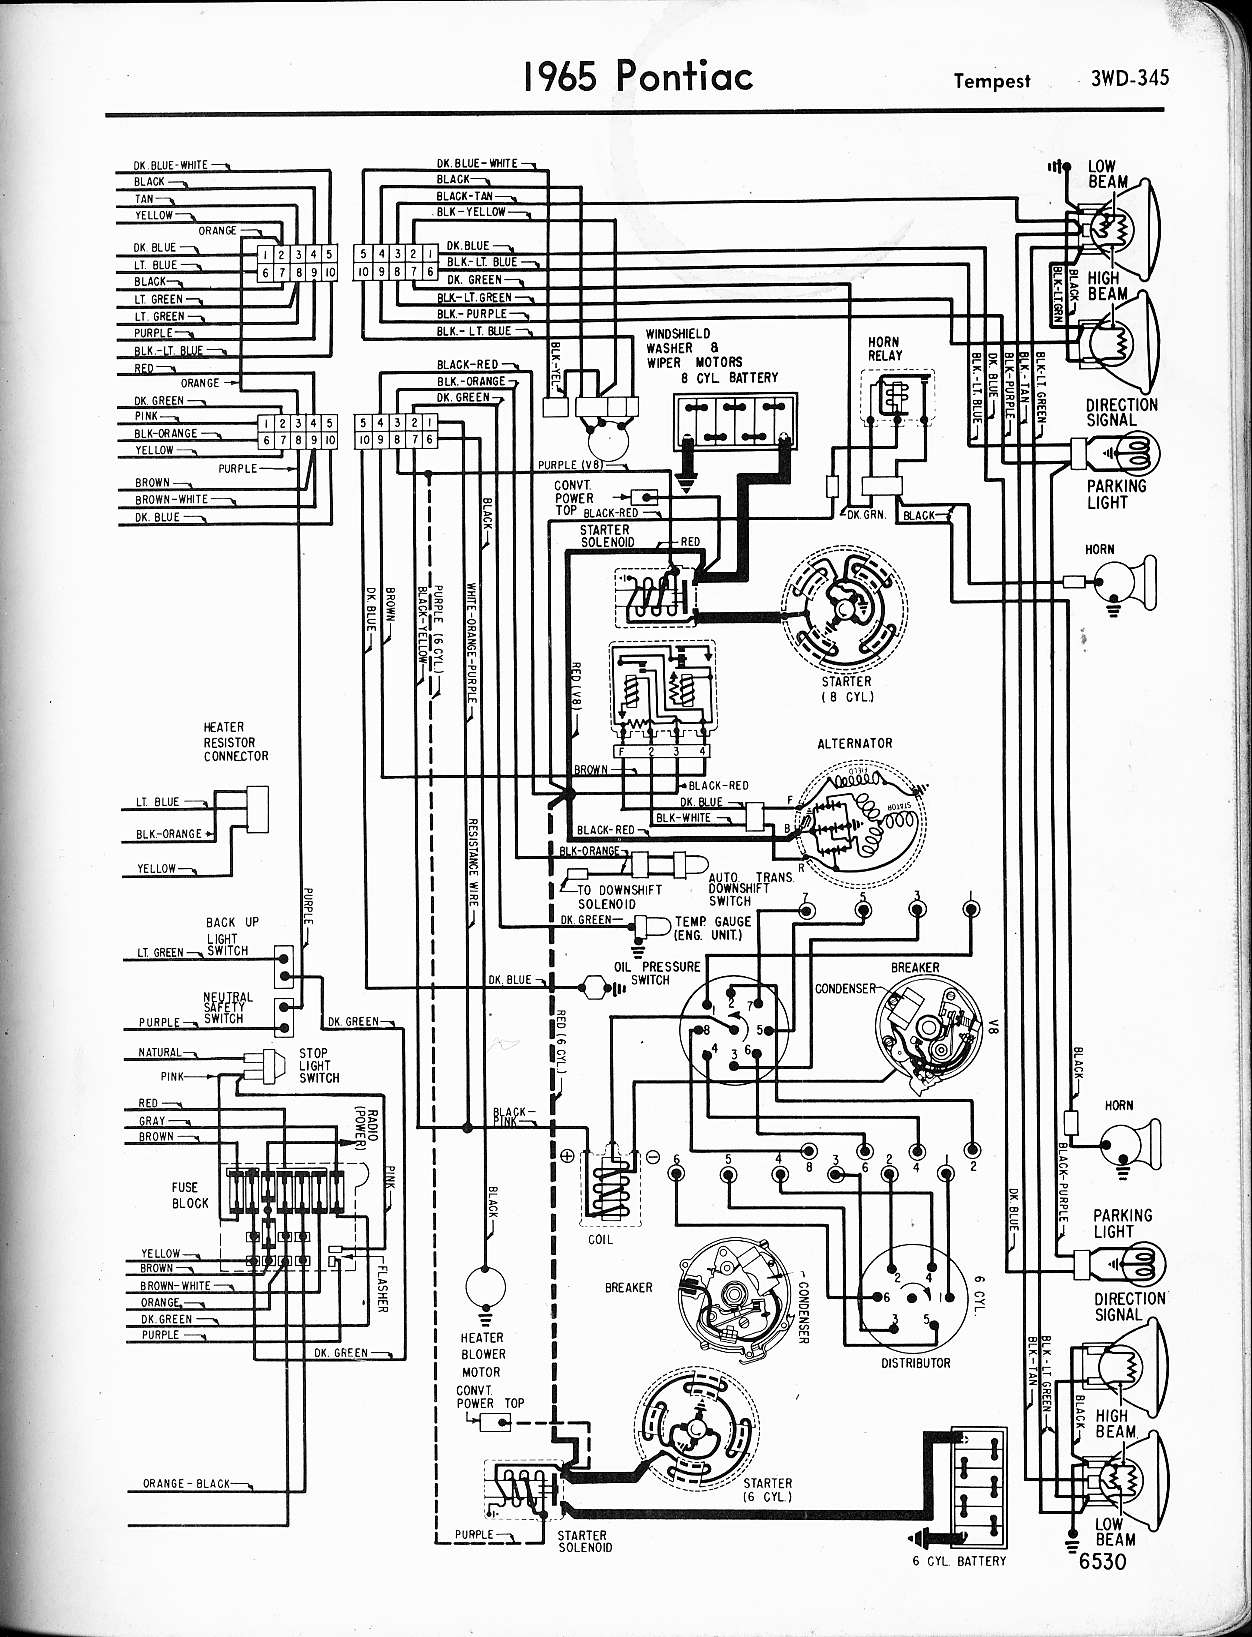 MWire5765 345 wallace racing wiring diagrams pontiac gto wiring diagram at readyjetset.co